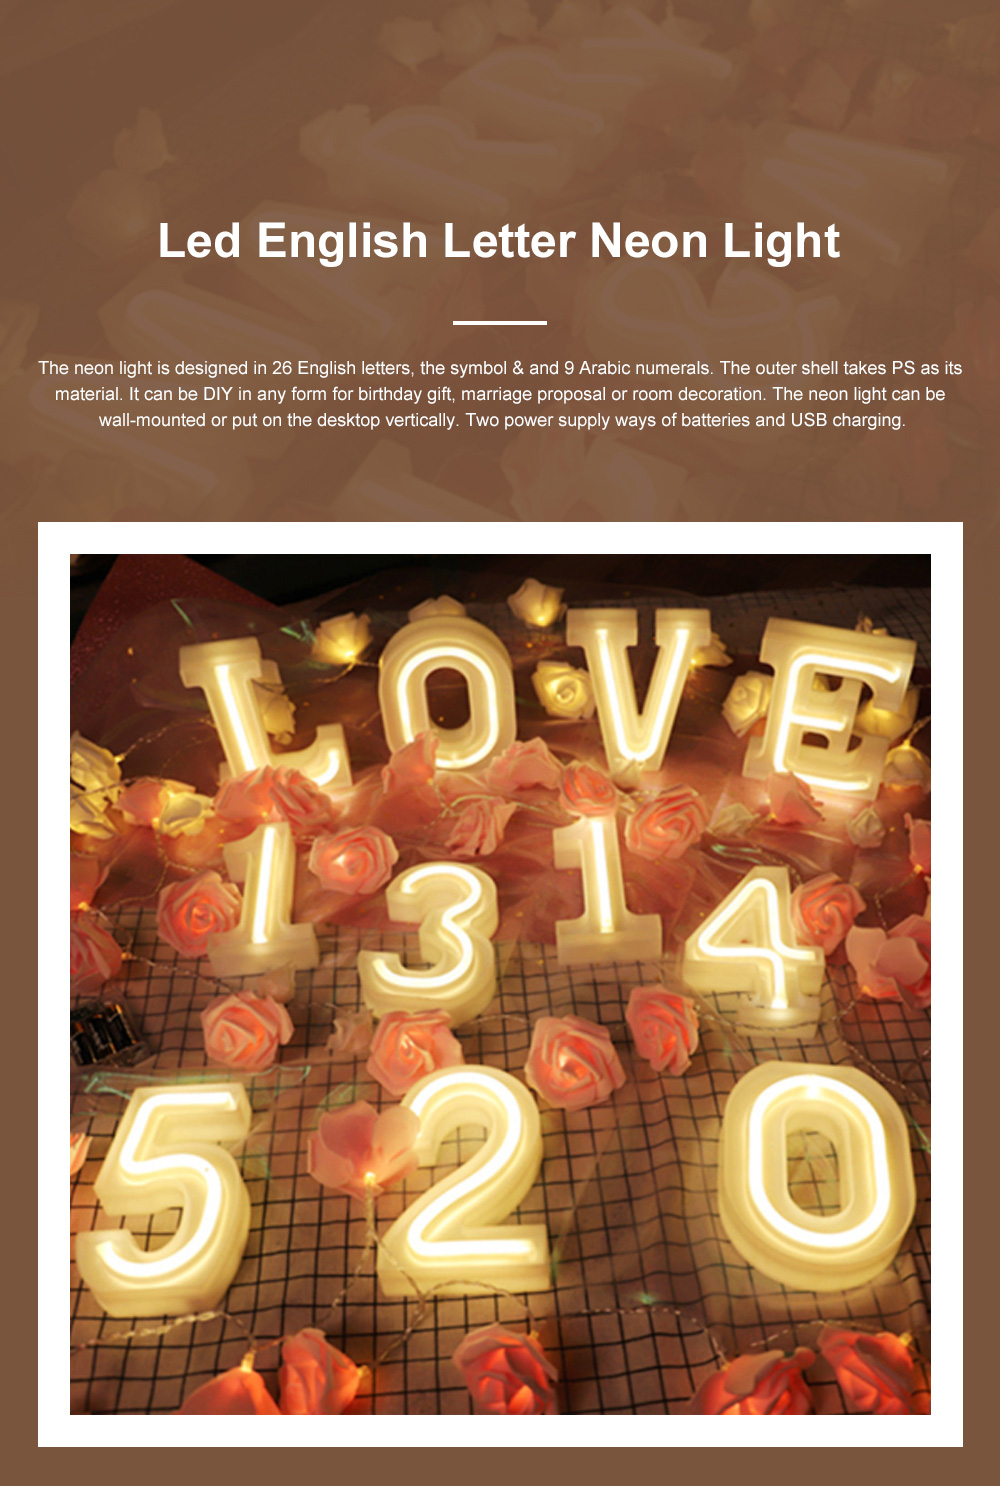 Hot LED Letter Arabic Numeral Neon Light for Marriage Proposal Birthday LED Decorative Night Light DIY String Light Halloween Christmas Decoration Lamp 0